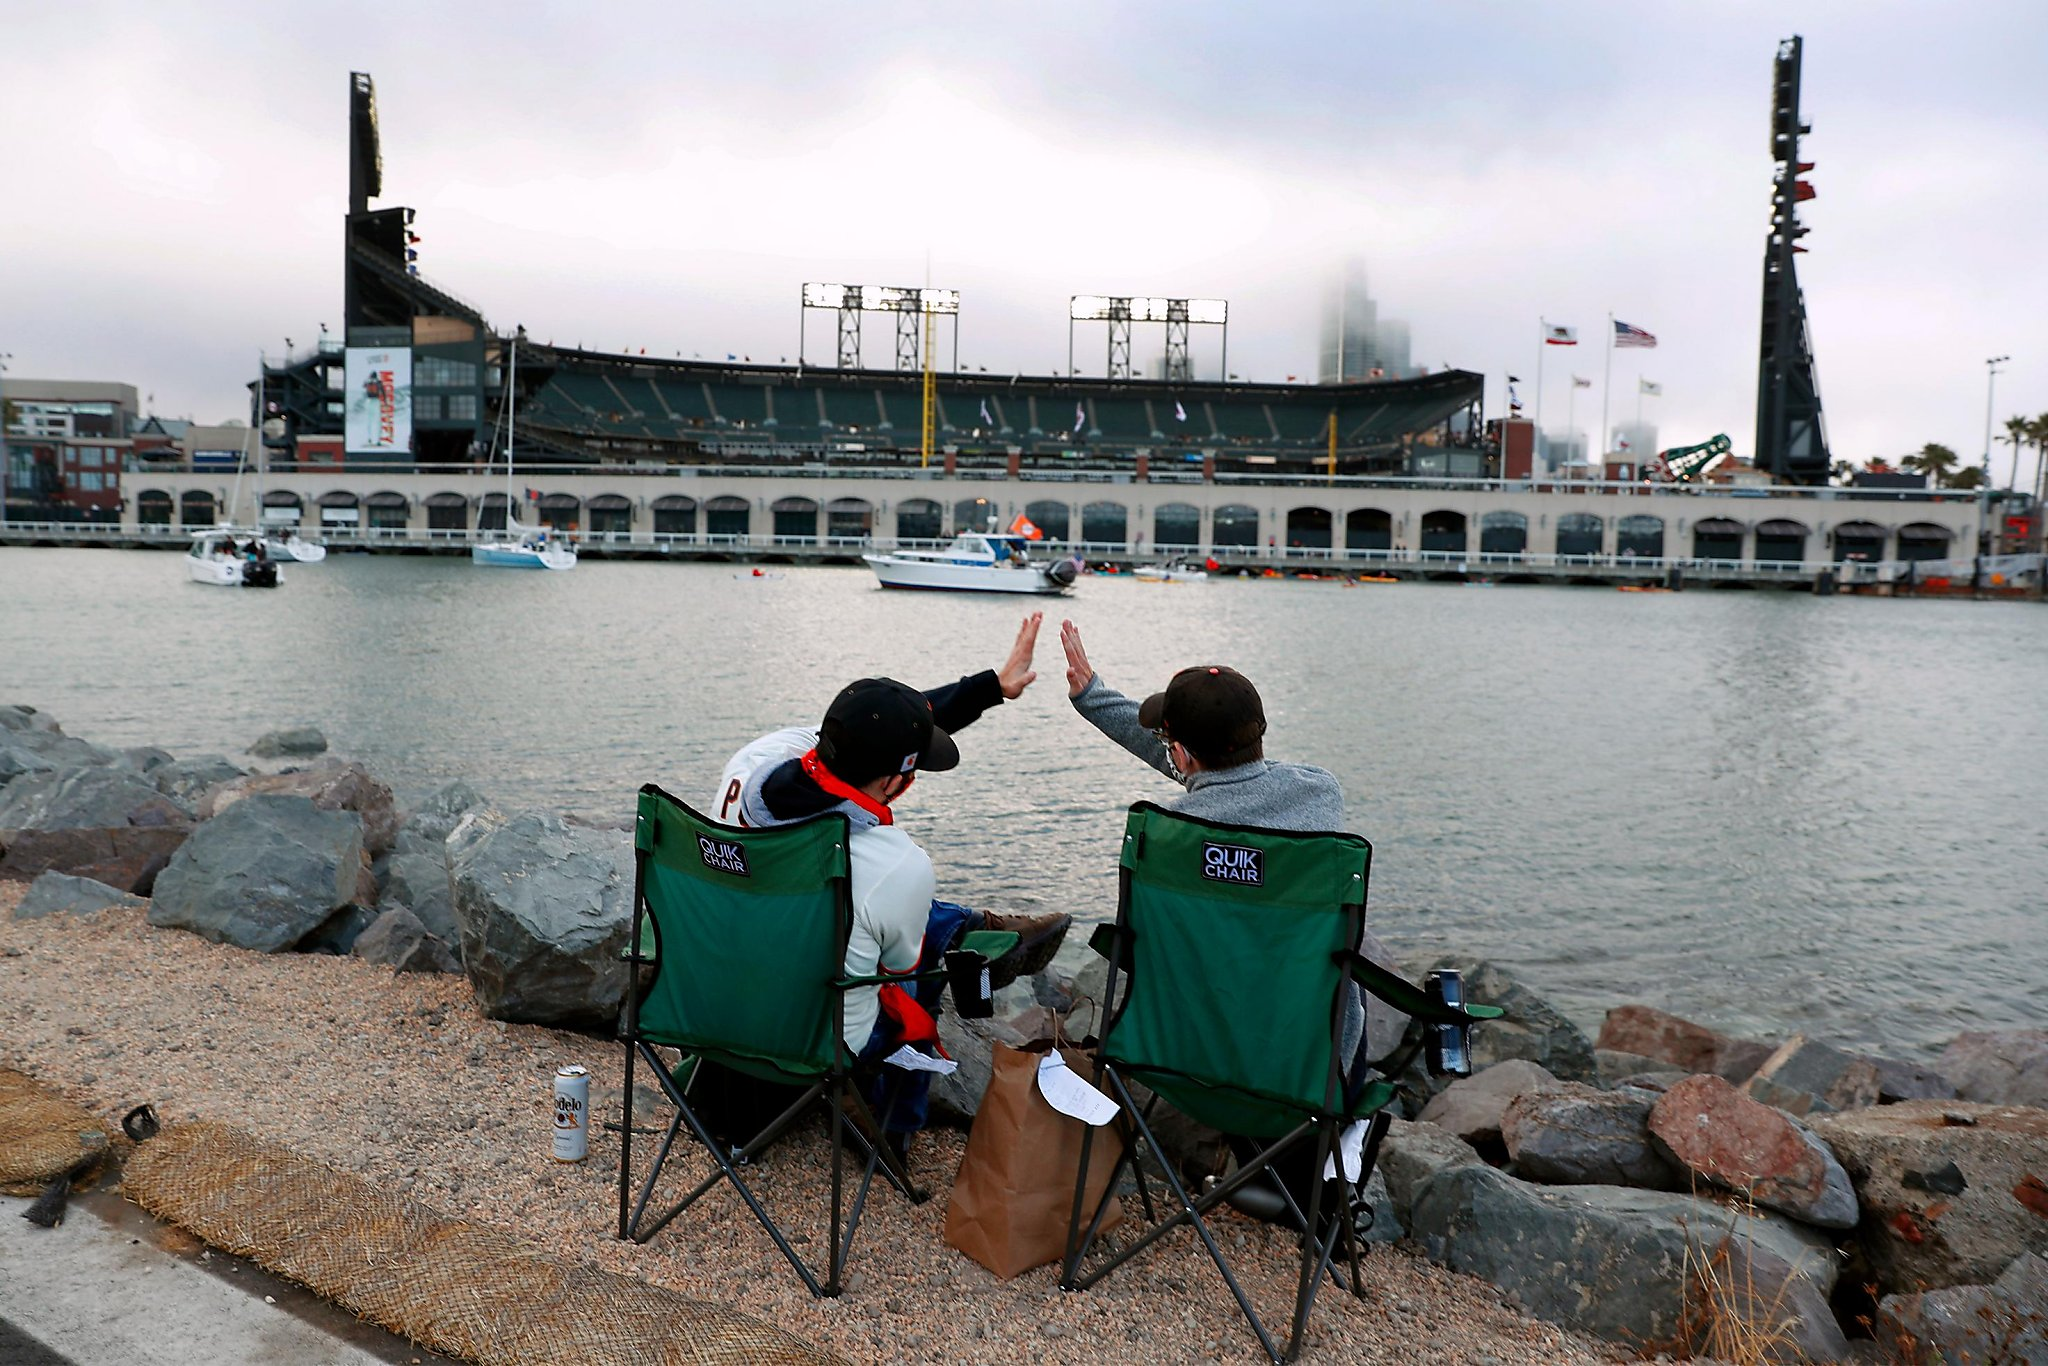 These two Giants ballpark traditions could desperately use an overhaul